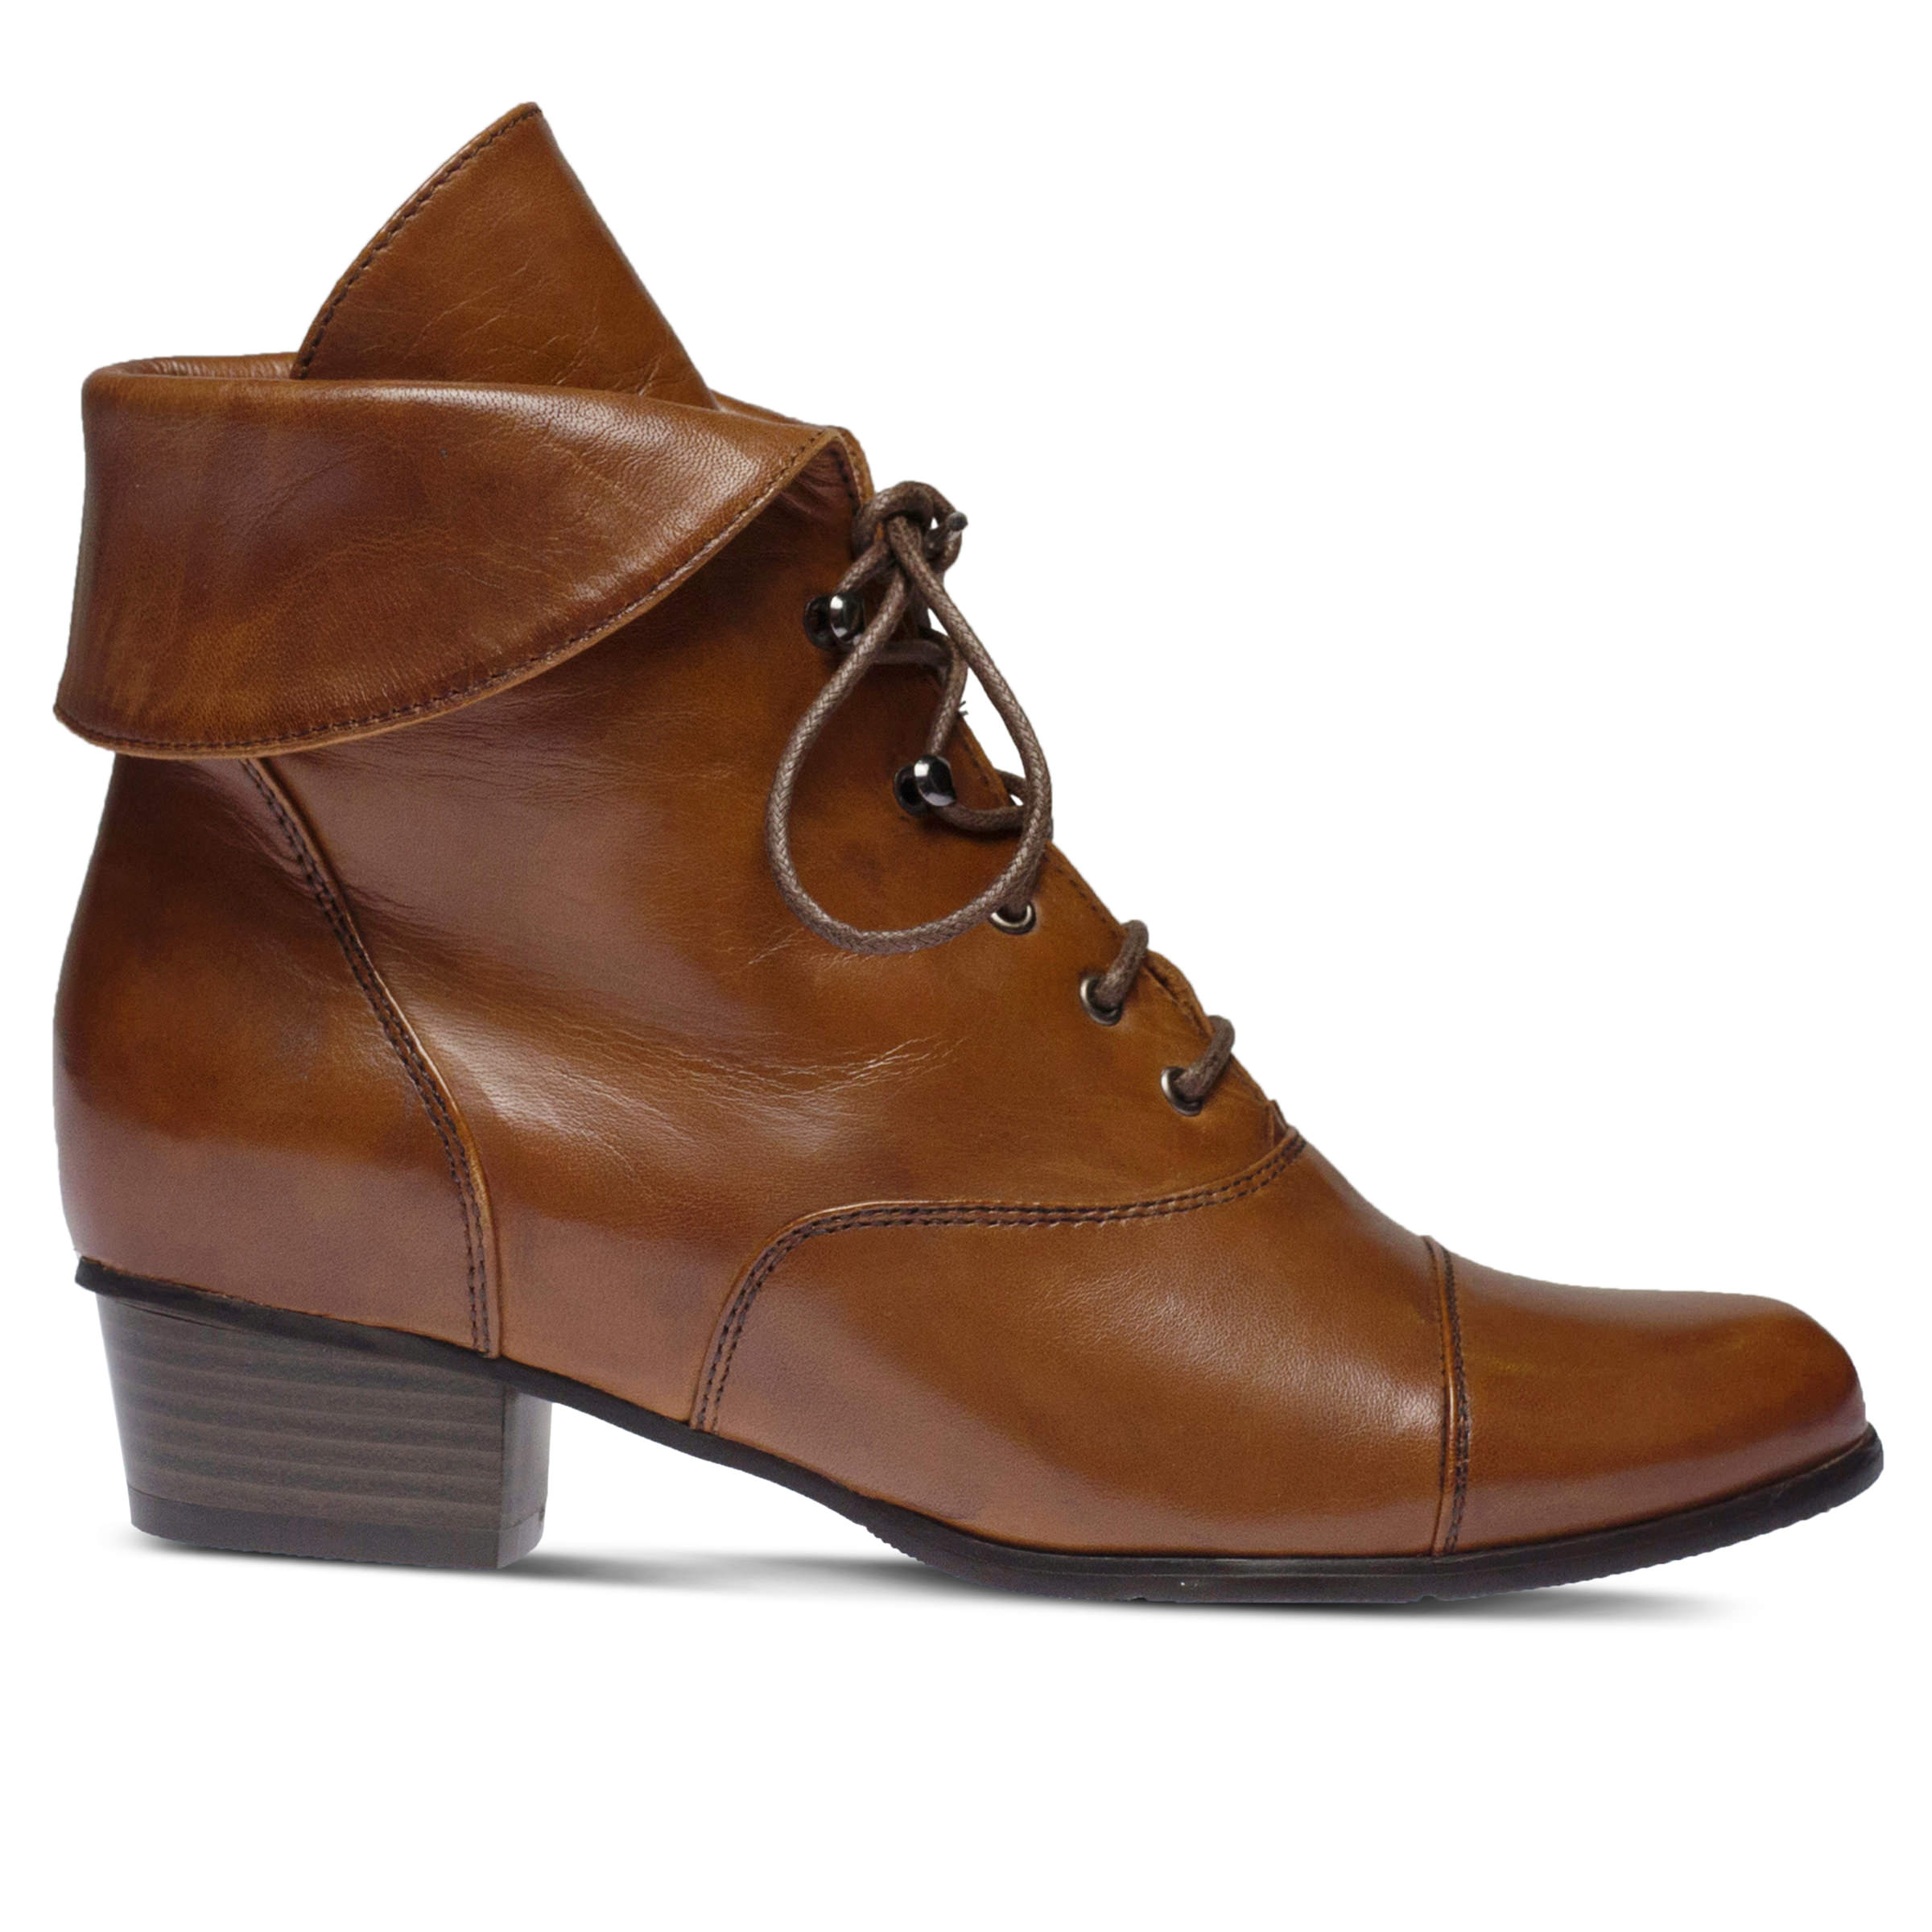 SPRING STEP Galil Women's Boots (Brown Leather)